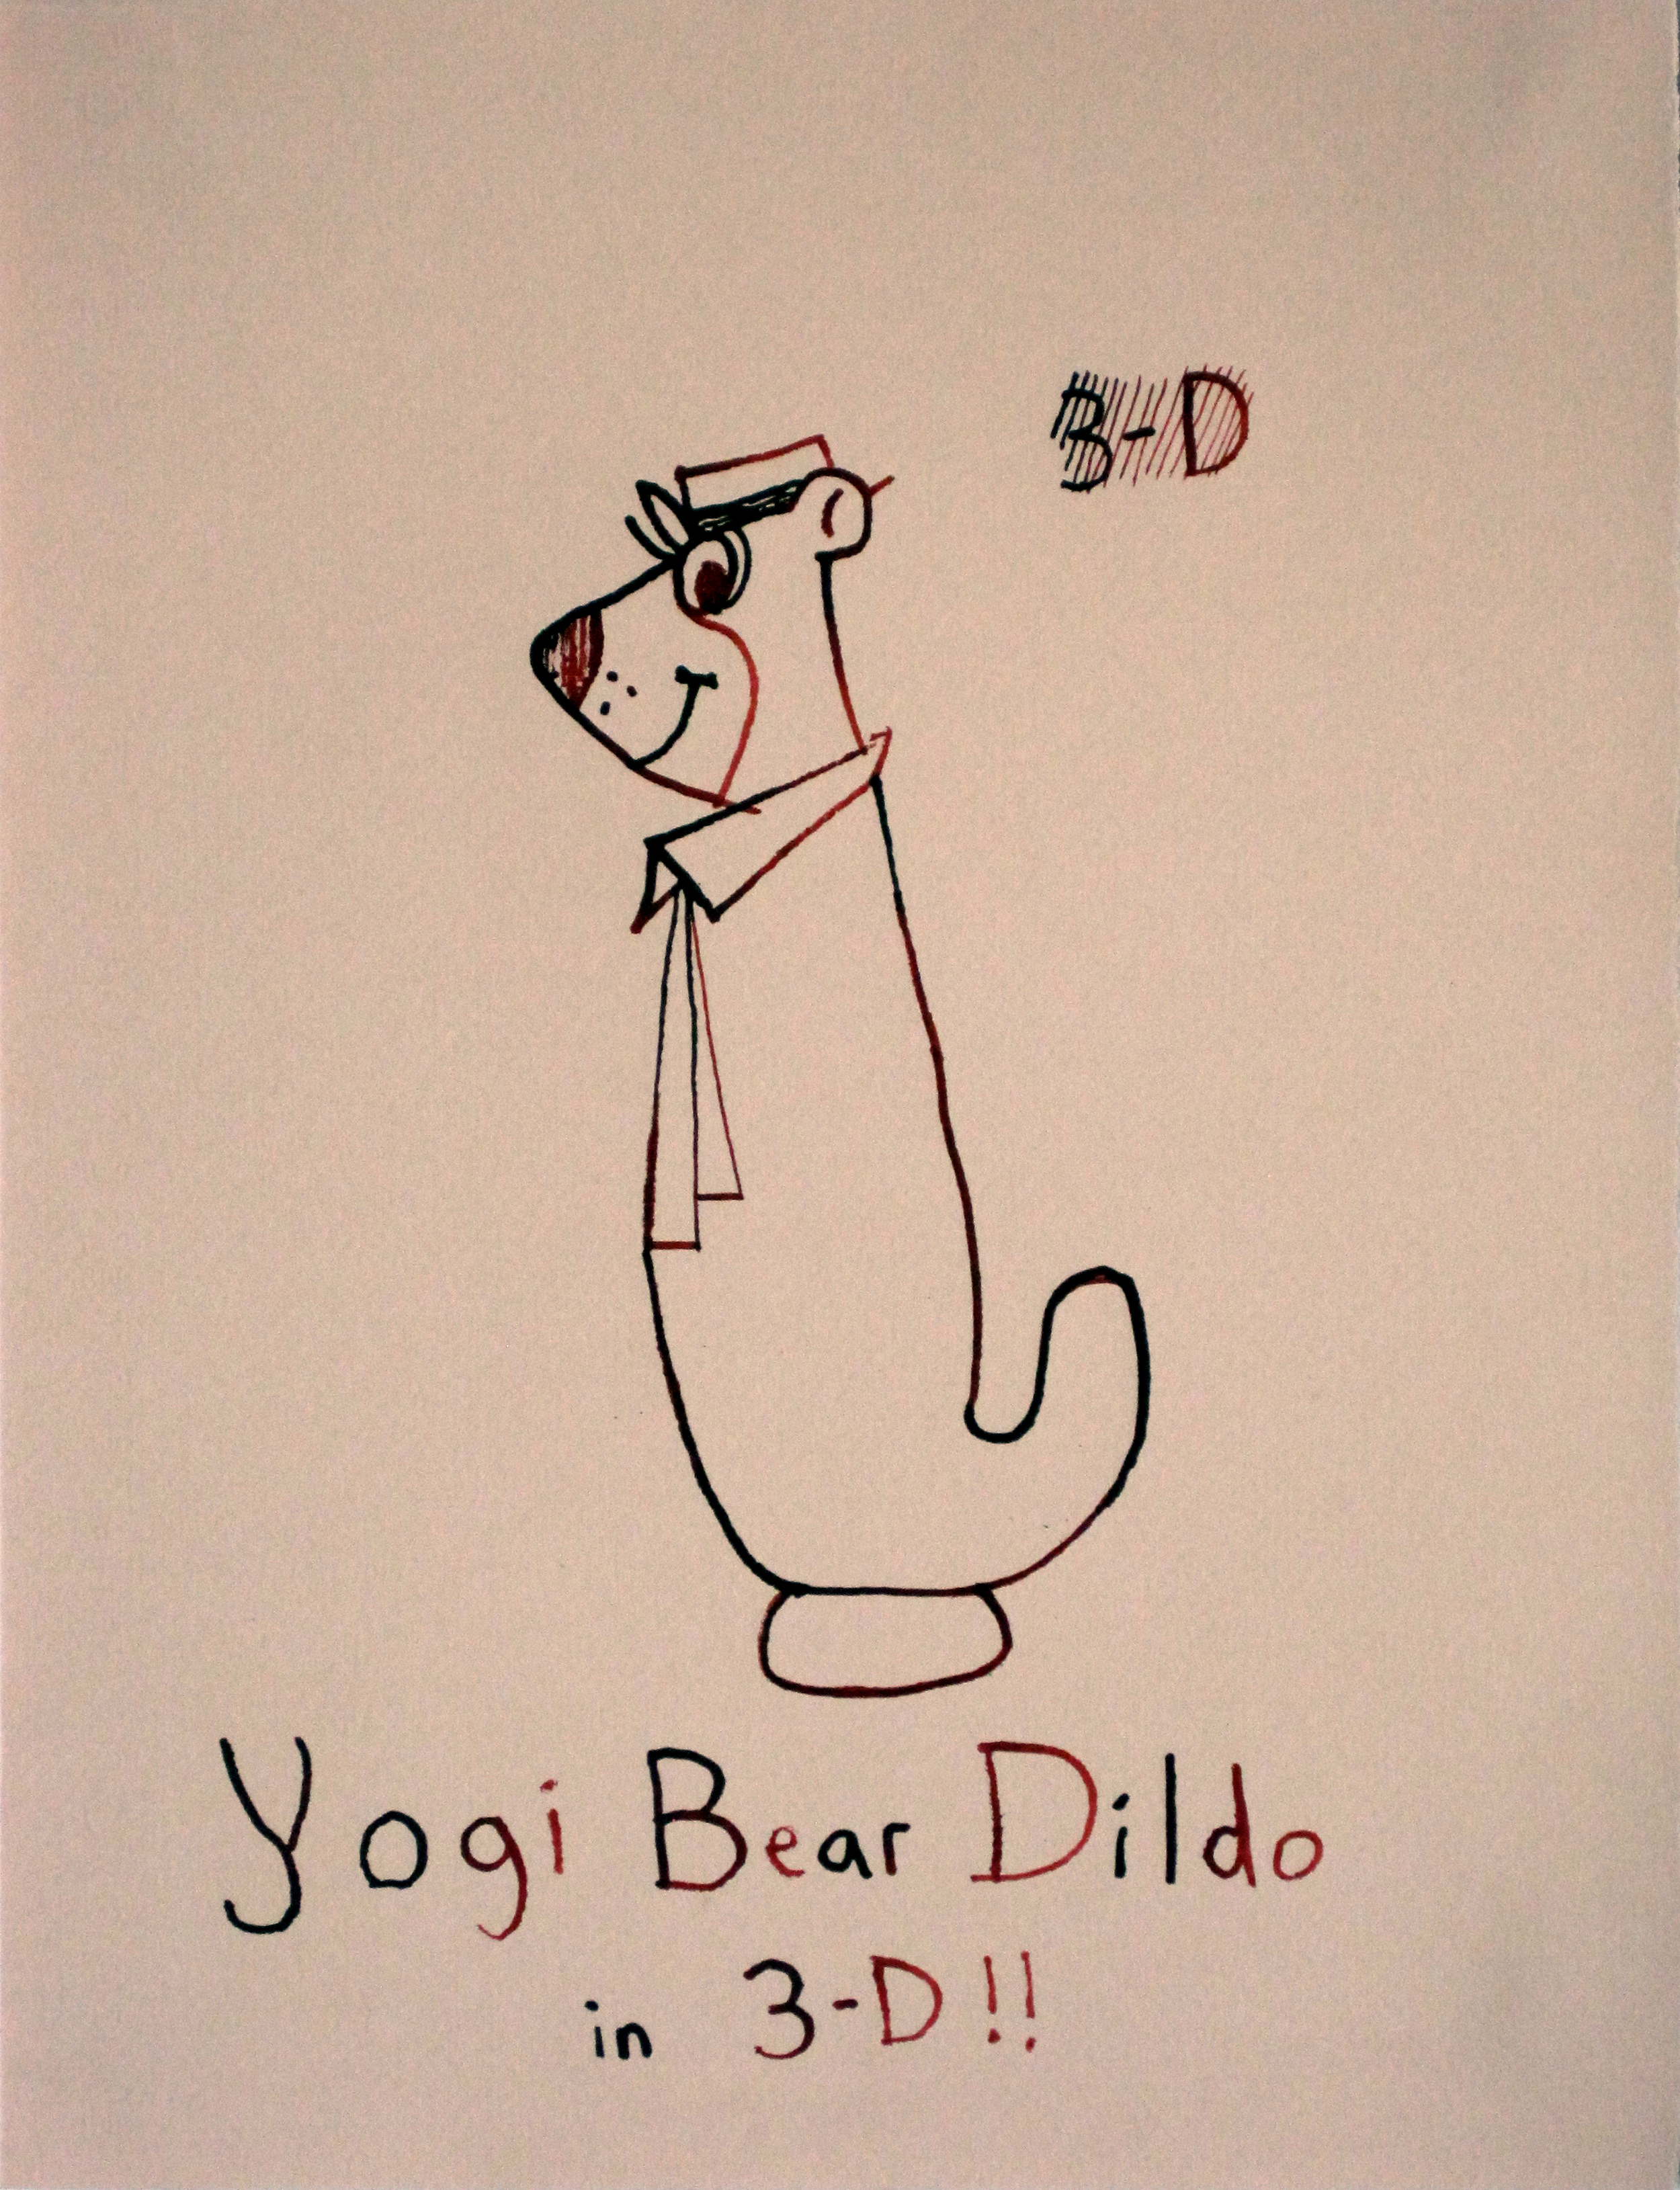 Yogi Bear Dildo in 3D